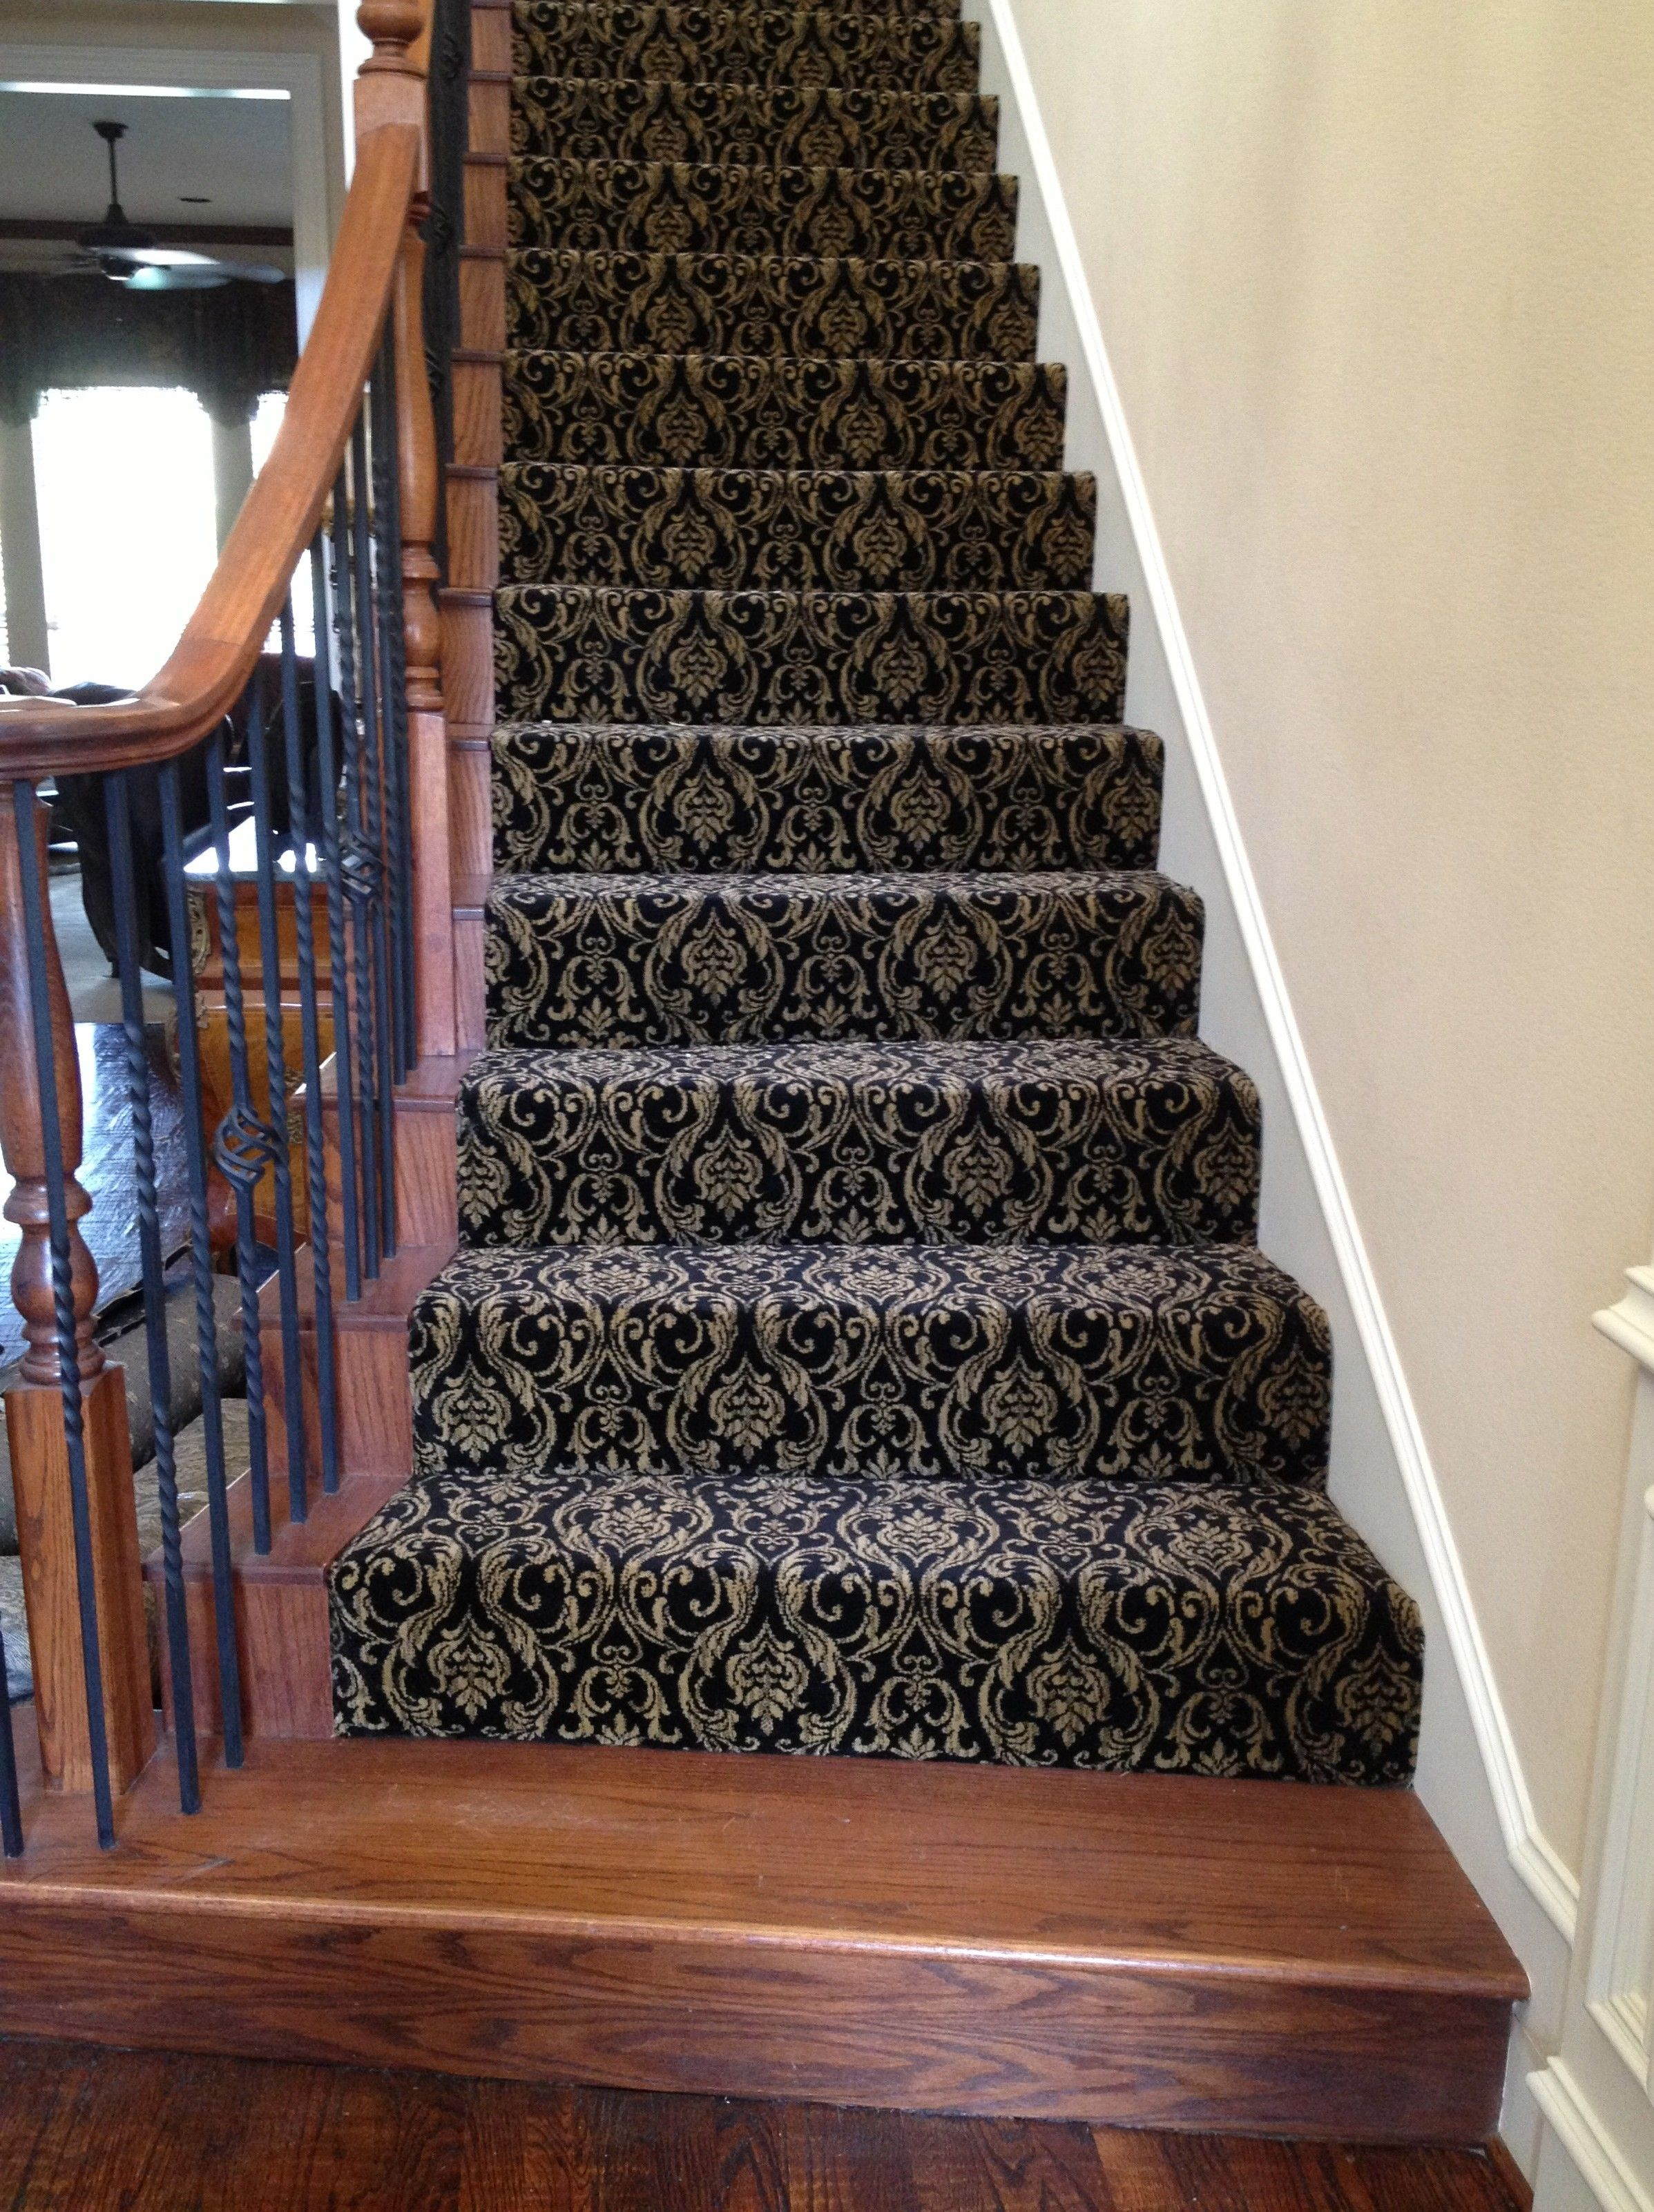 Breathtaking 32 Incredible Diy Staircase Makeover Ideas To Refresh The Entire Home Atmosphere Ht Carpet Staircase Patterned Stair Carpet Diy Staircase Makeover